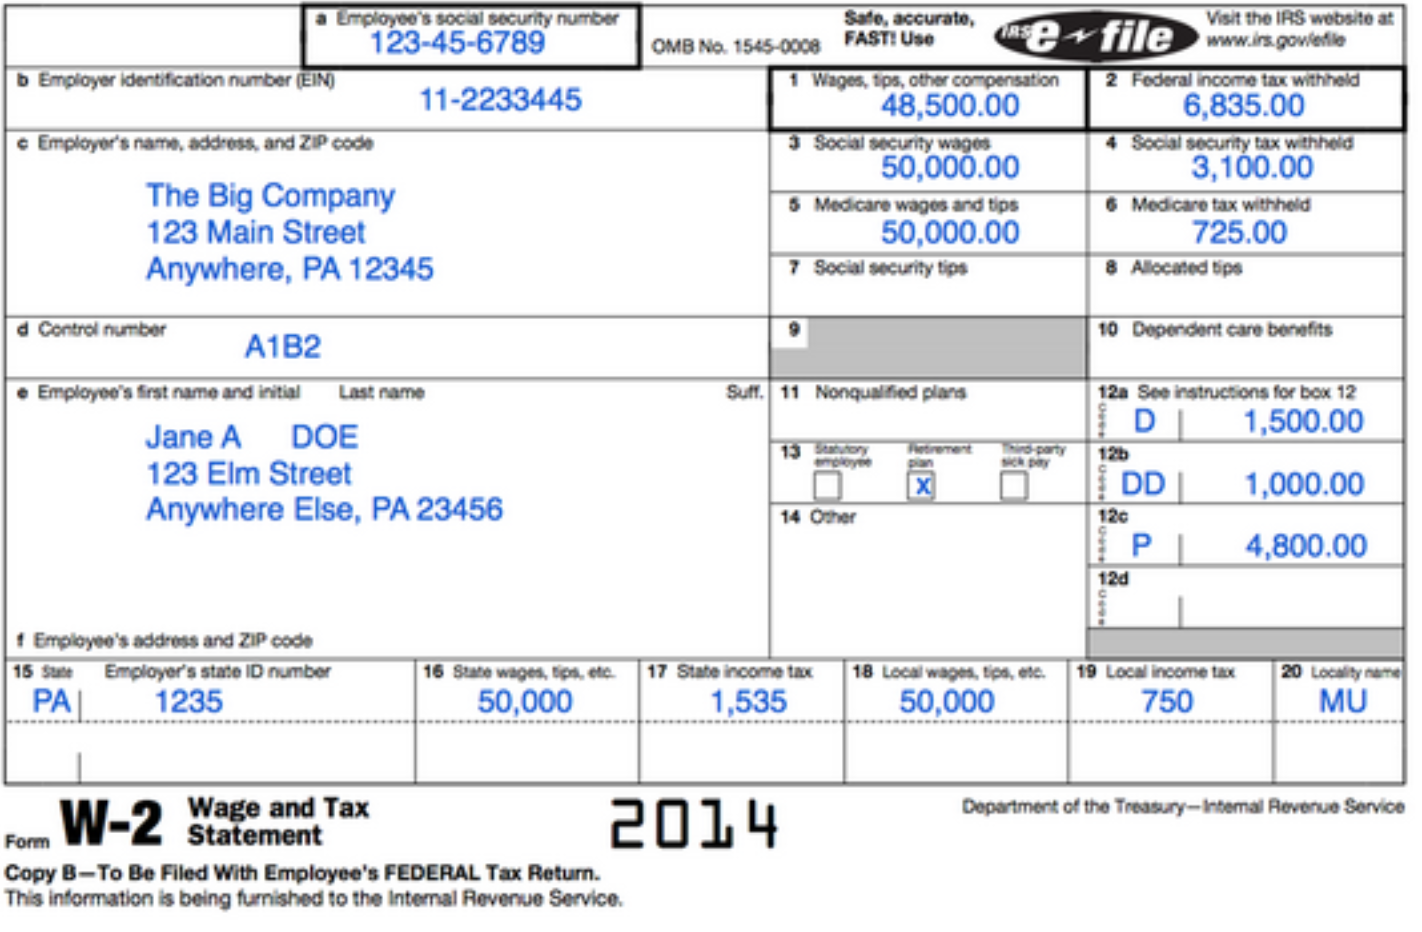 An image of a W2 Wage and Tax Statement Document. This document shows the employee's social security number, wages, tips, other compensation, and federal income tax withheld as fields that are focused on within the document.